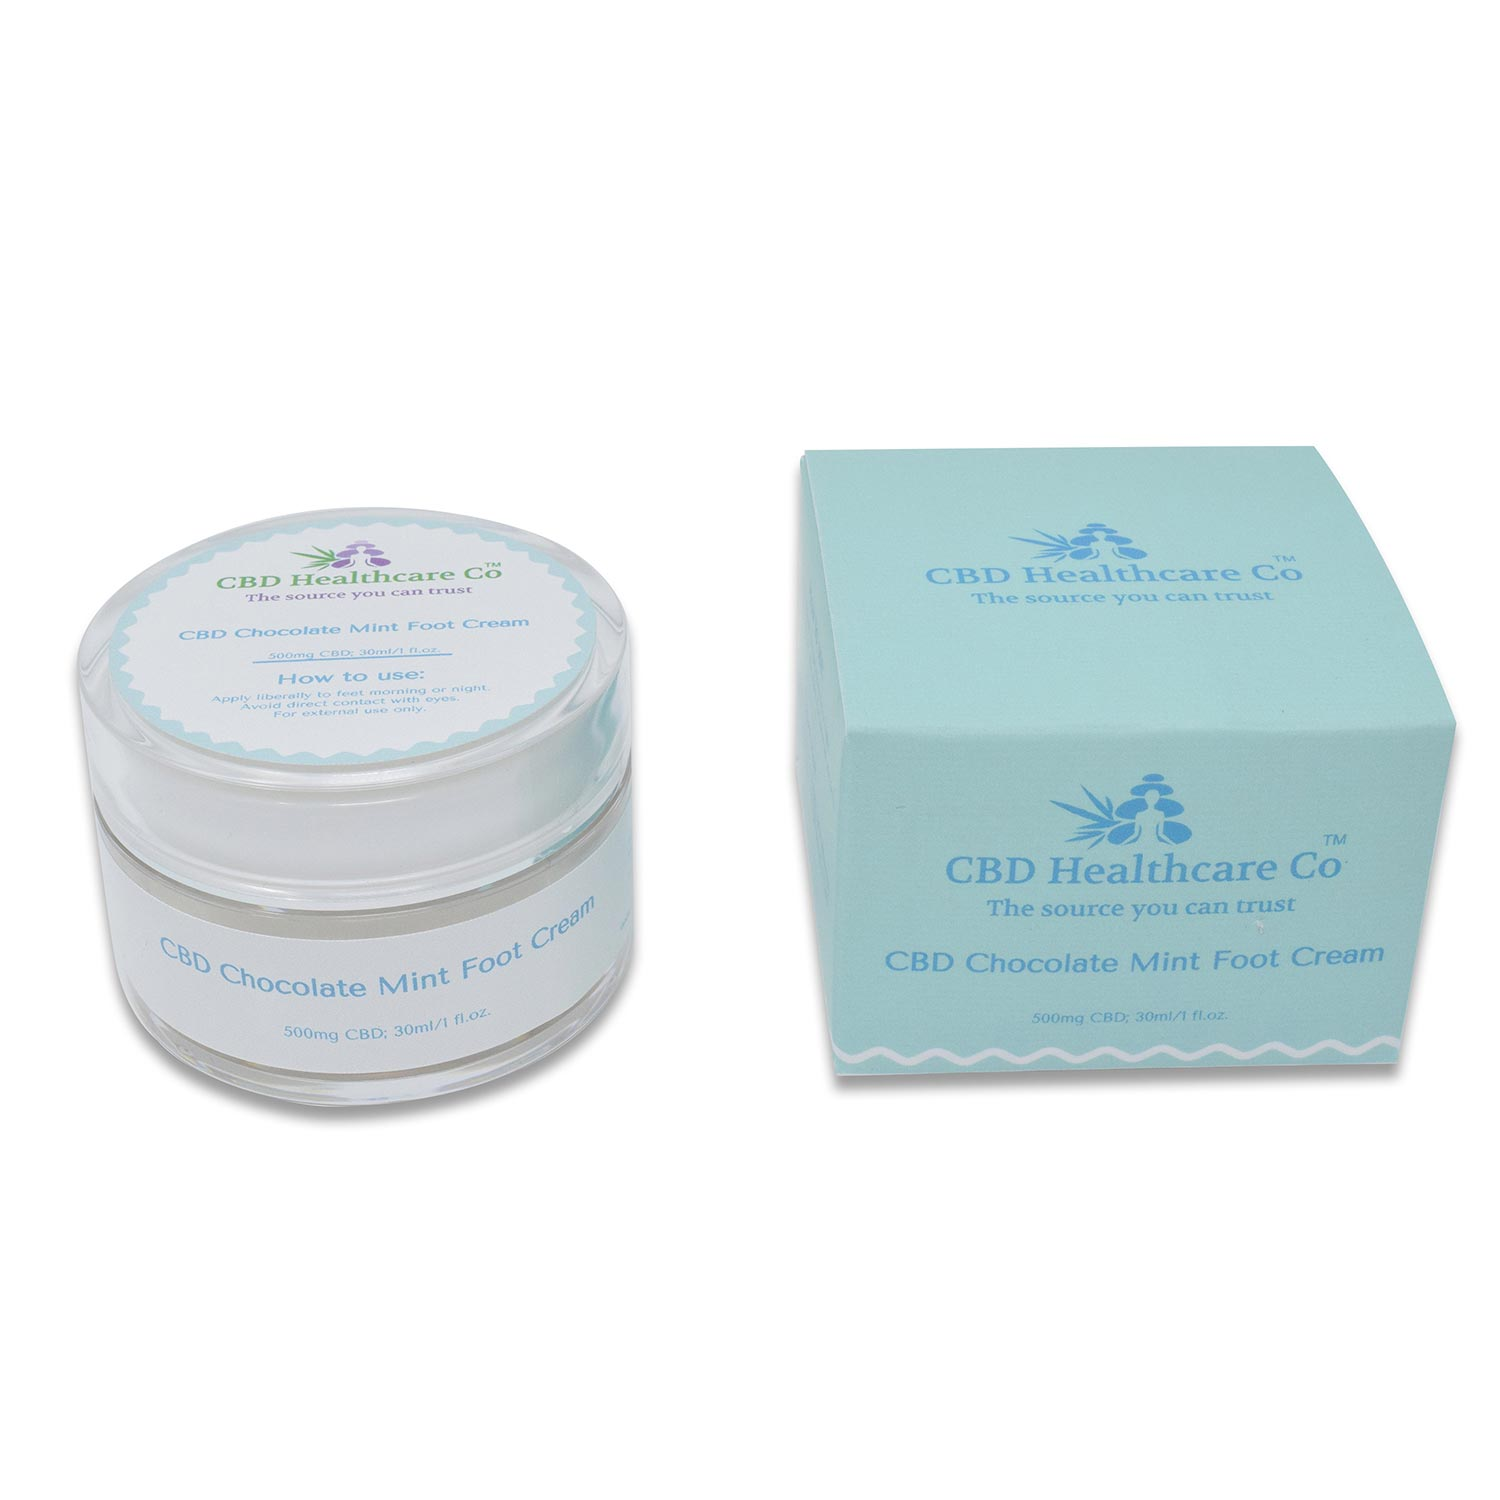 CBD Healthcare Company CBD Chocolate Mint Foot Cream